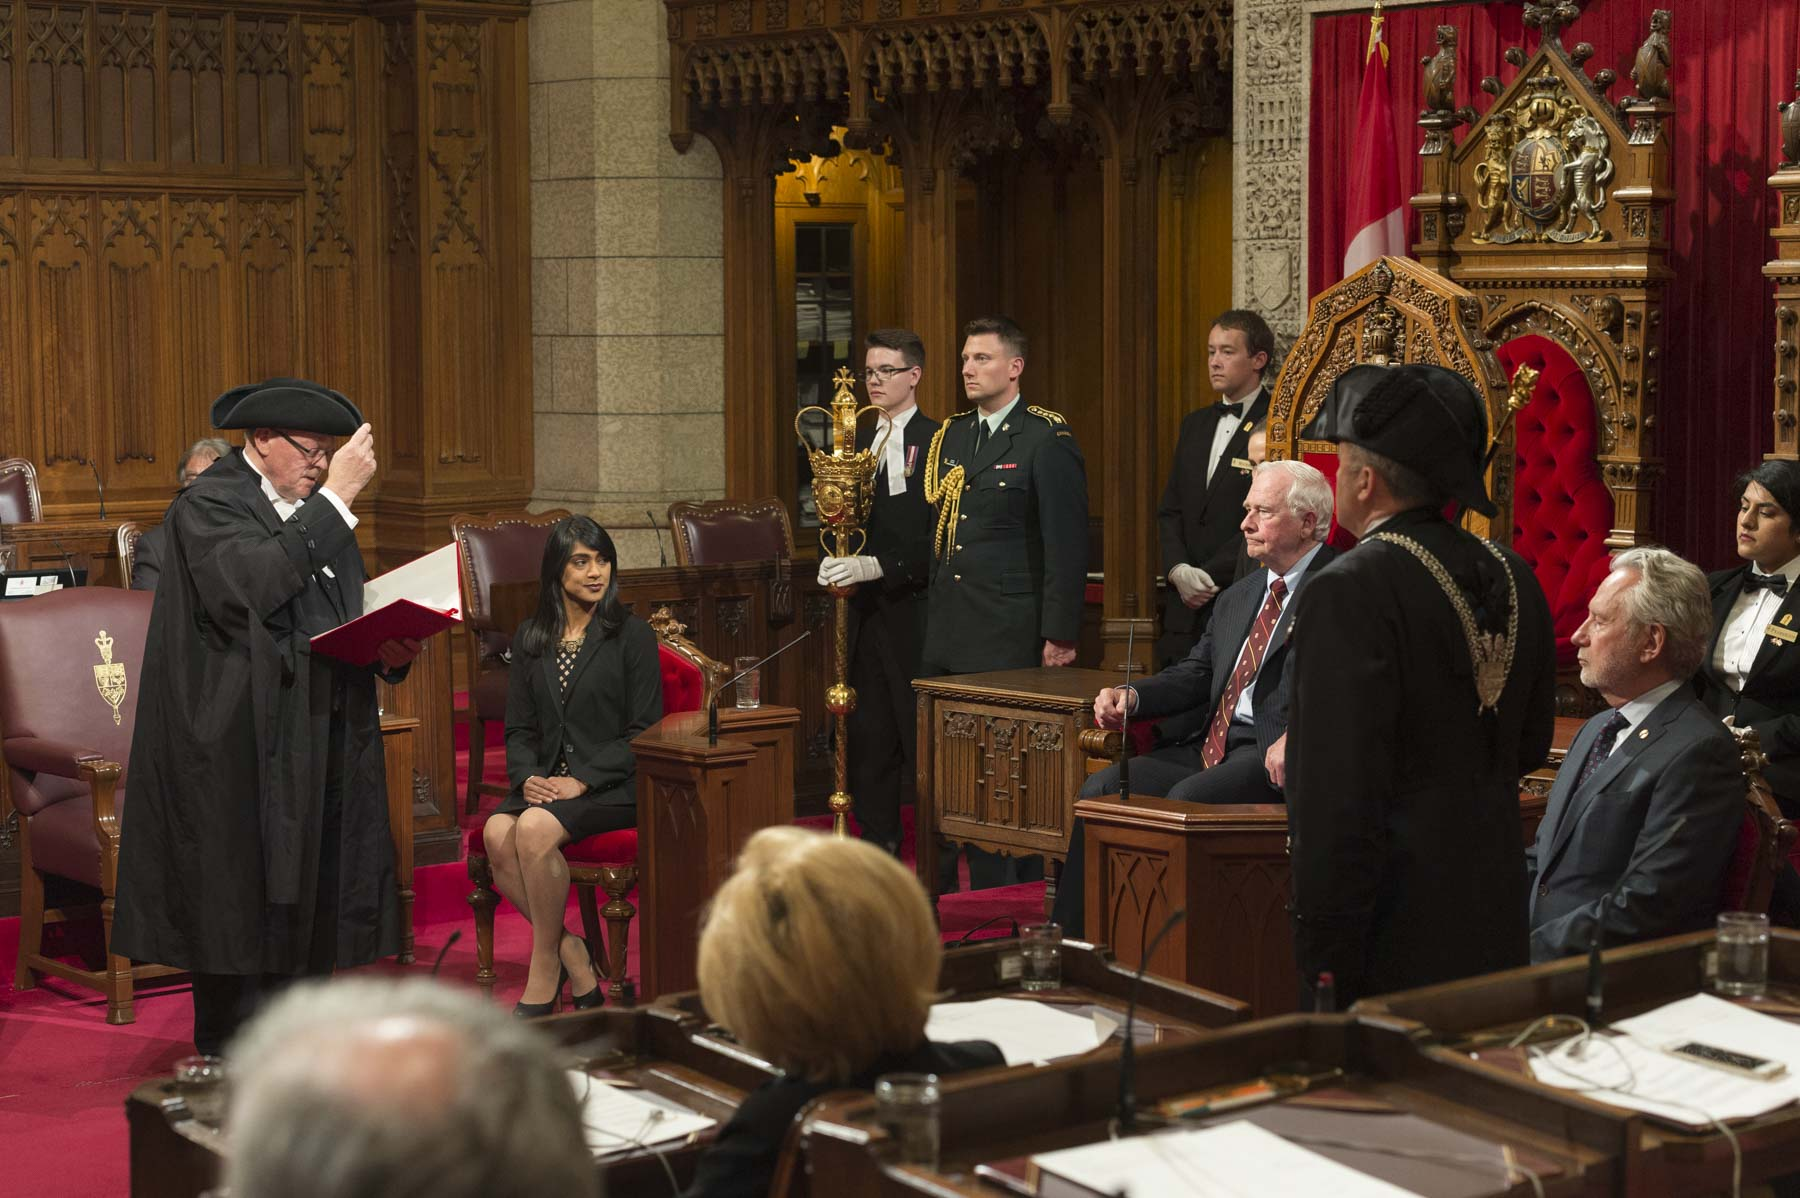 As The Queen's representative in Canada, His Excellency the Right Honourable David Johnston, Governor General of Canada, attended a traditional Royal Assent ceremony in the Senate Chamber on Parliament Hill, in Ottawa. On June 19, 2017.